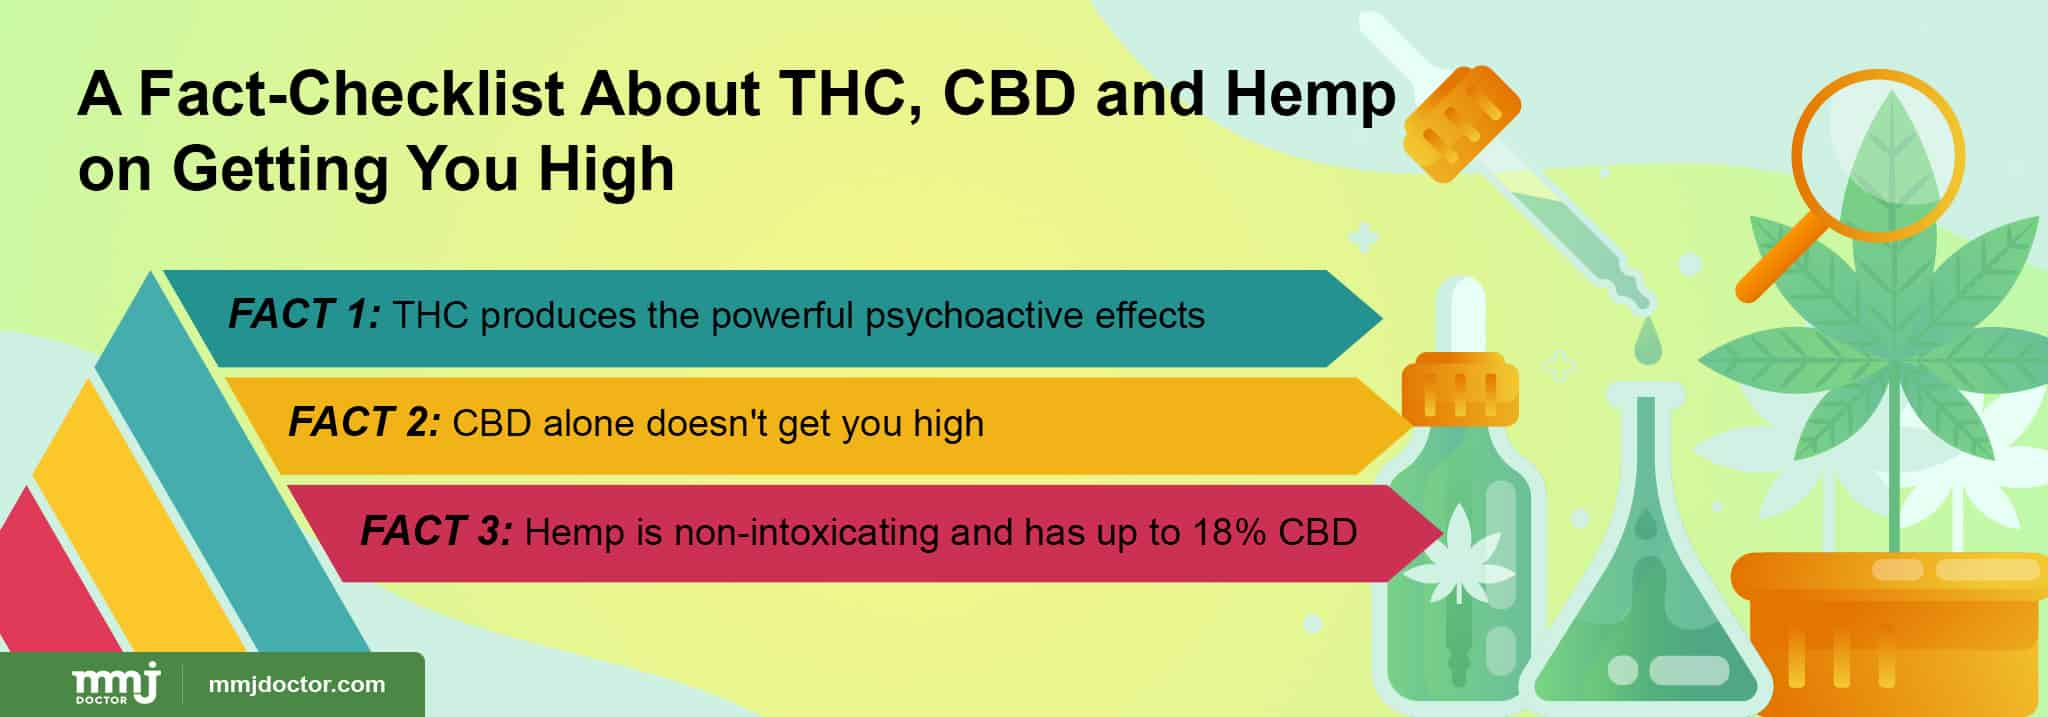 Facts about hemp, CBD and THC